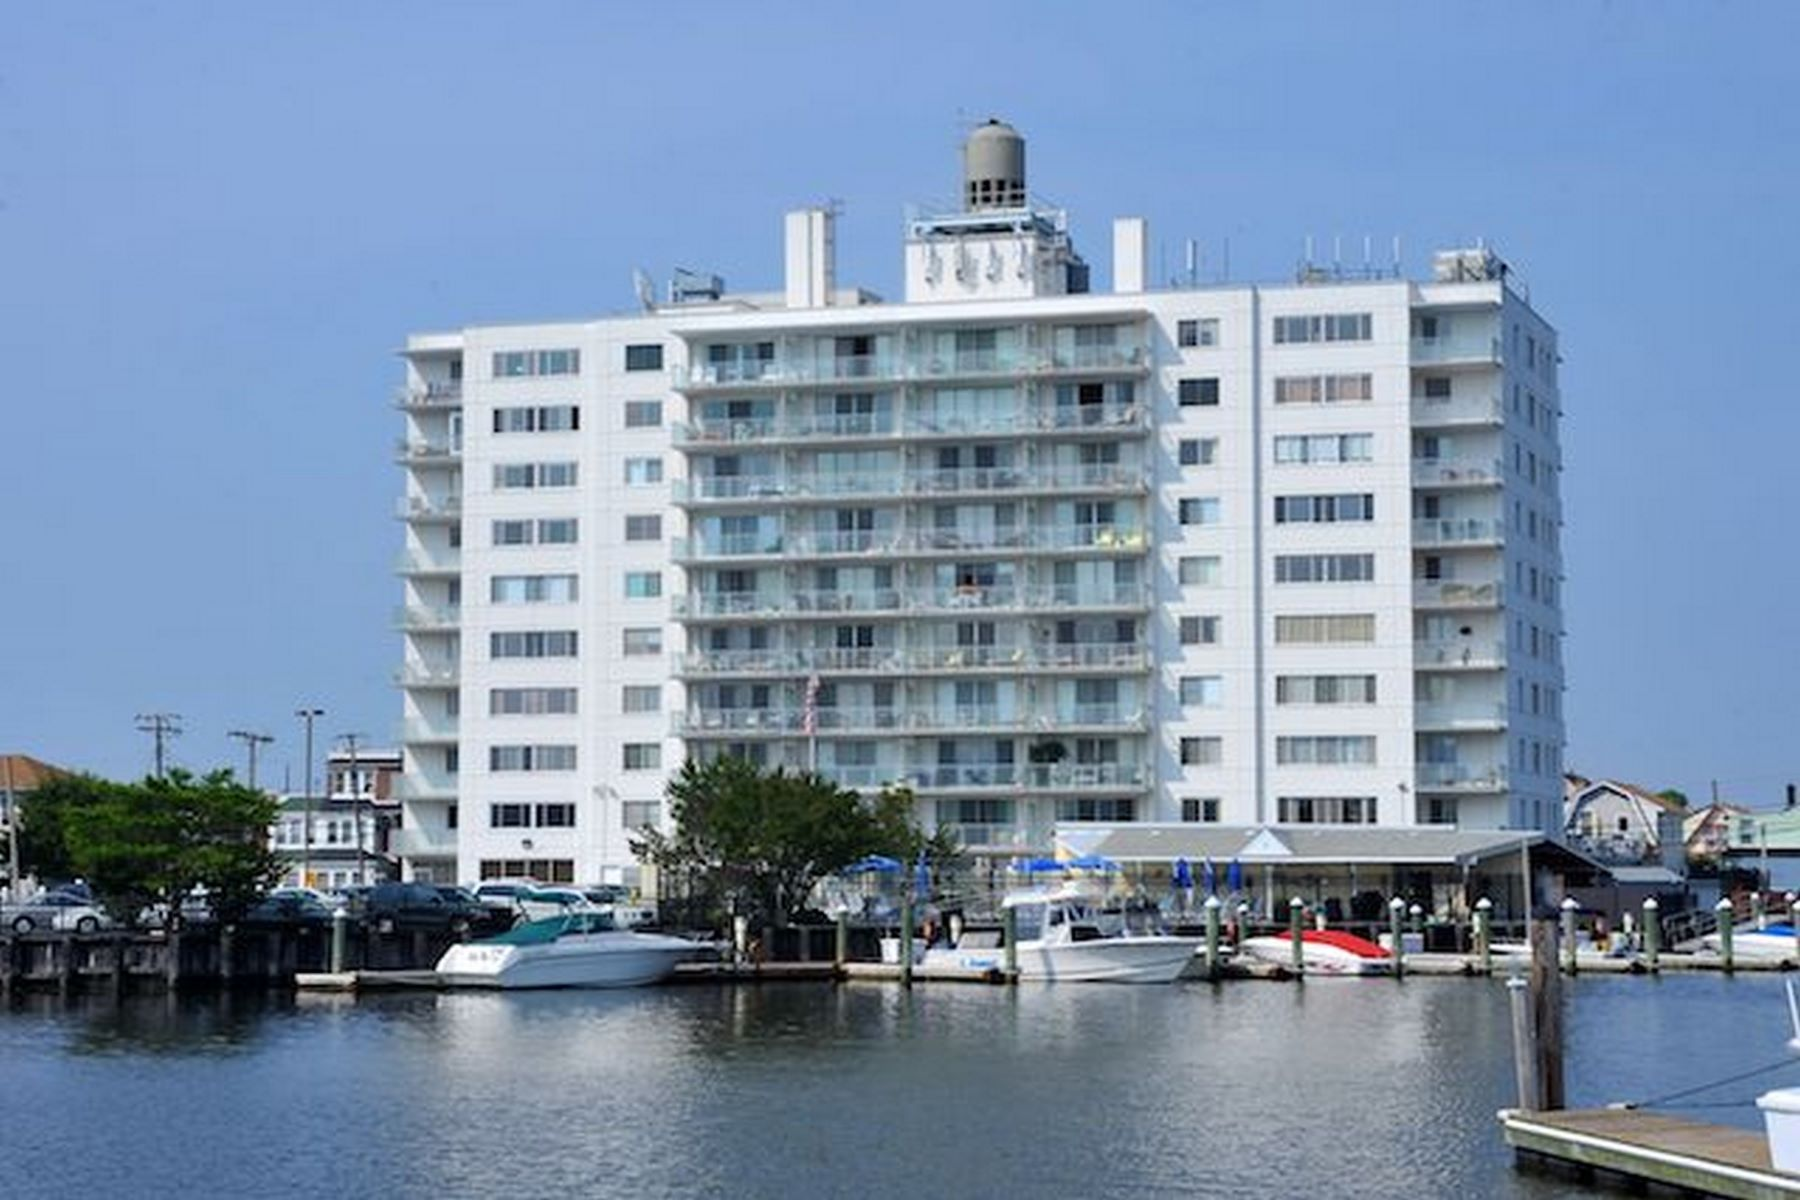 Condominium for Rent at Ventnor on the Bay 6101 Monmouth Ave Unit #611, Ventnor, New Jersey 08406 United States